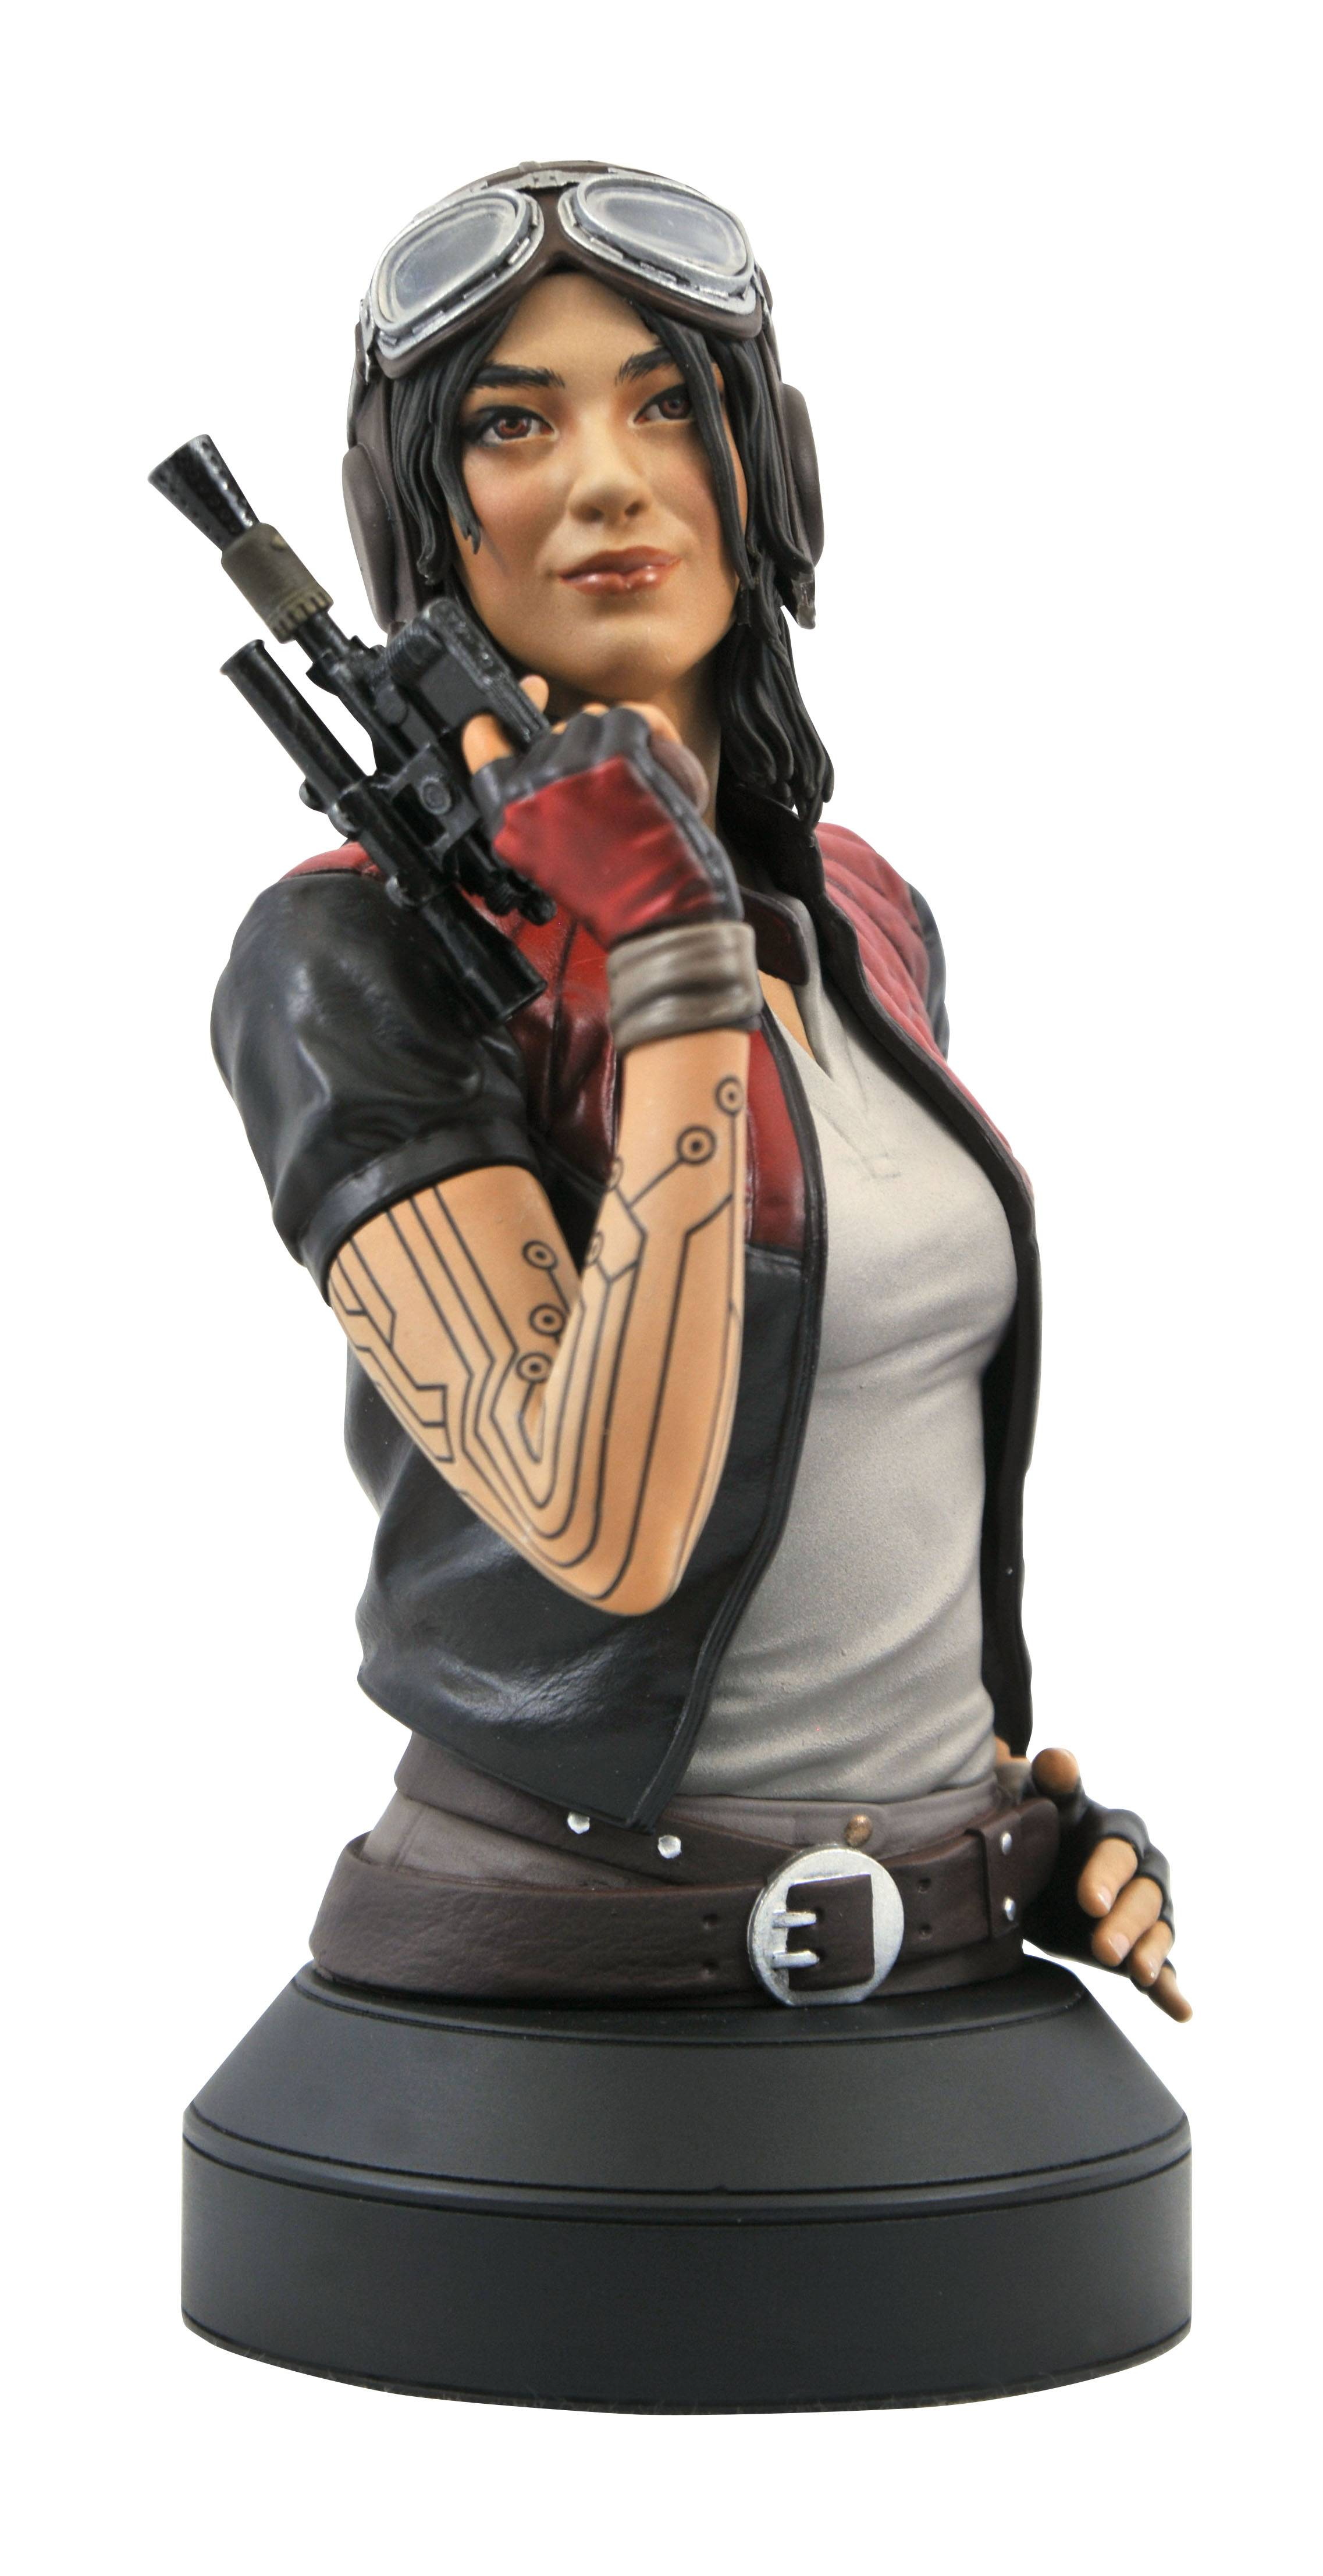 Pre-Order Diamond Star Wars Dr. Aphra Bust